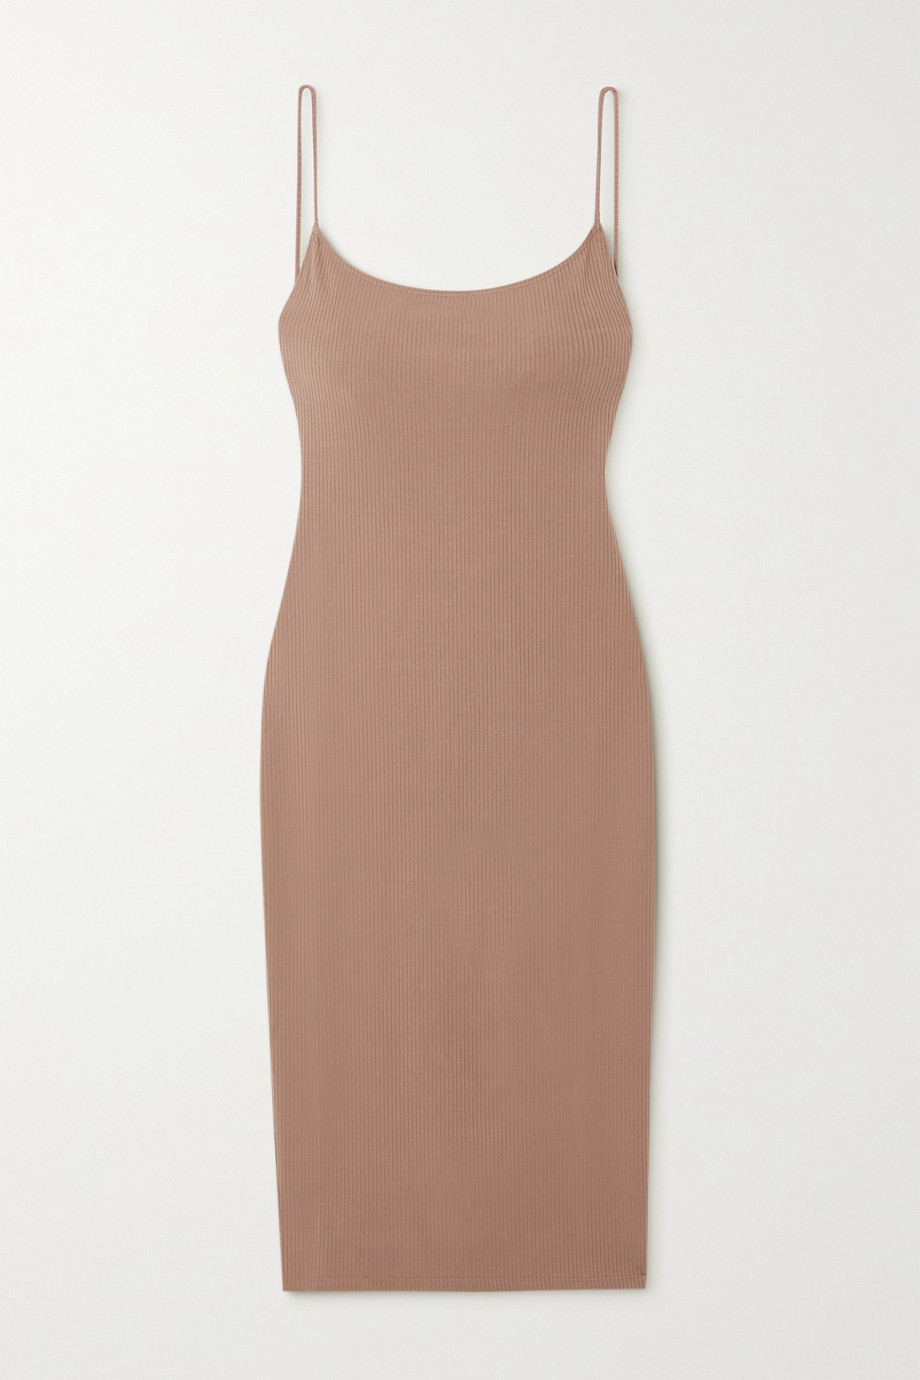 REFORMATION Kelsee open-back ribbed stretch-TENCEL Lyocell midi dress